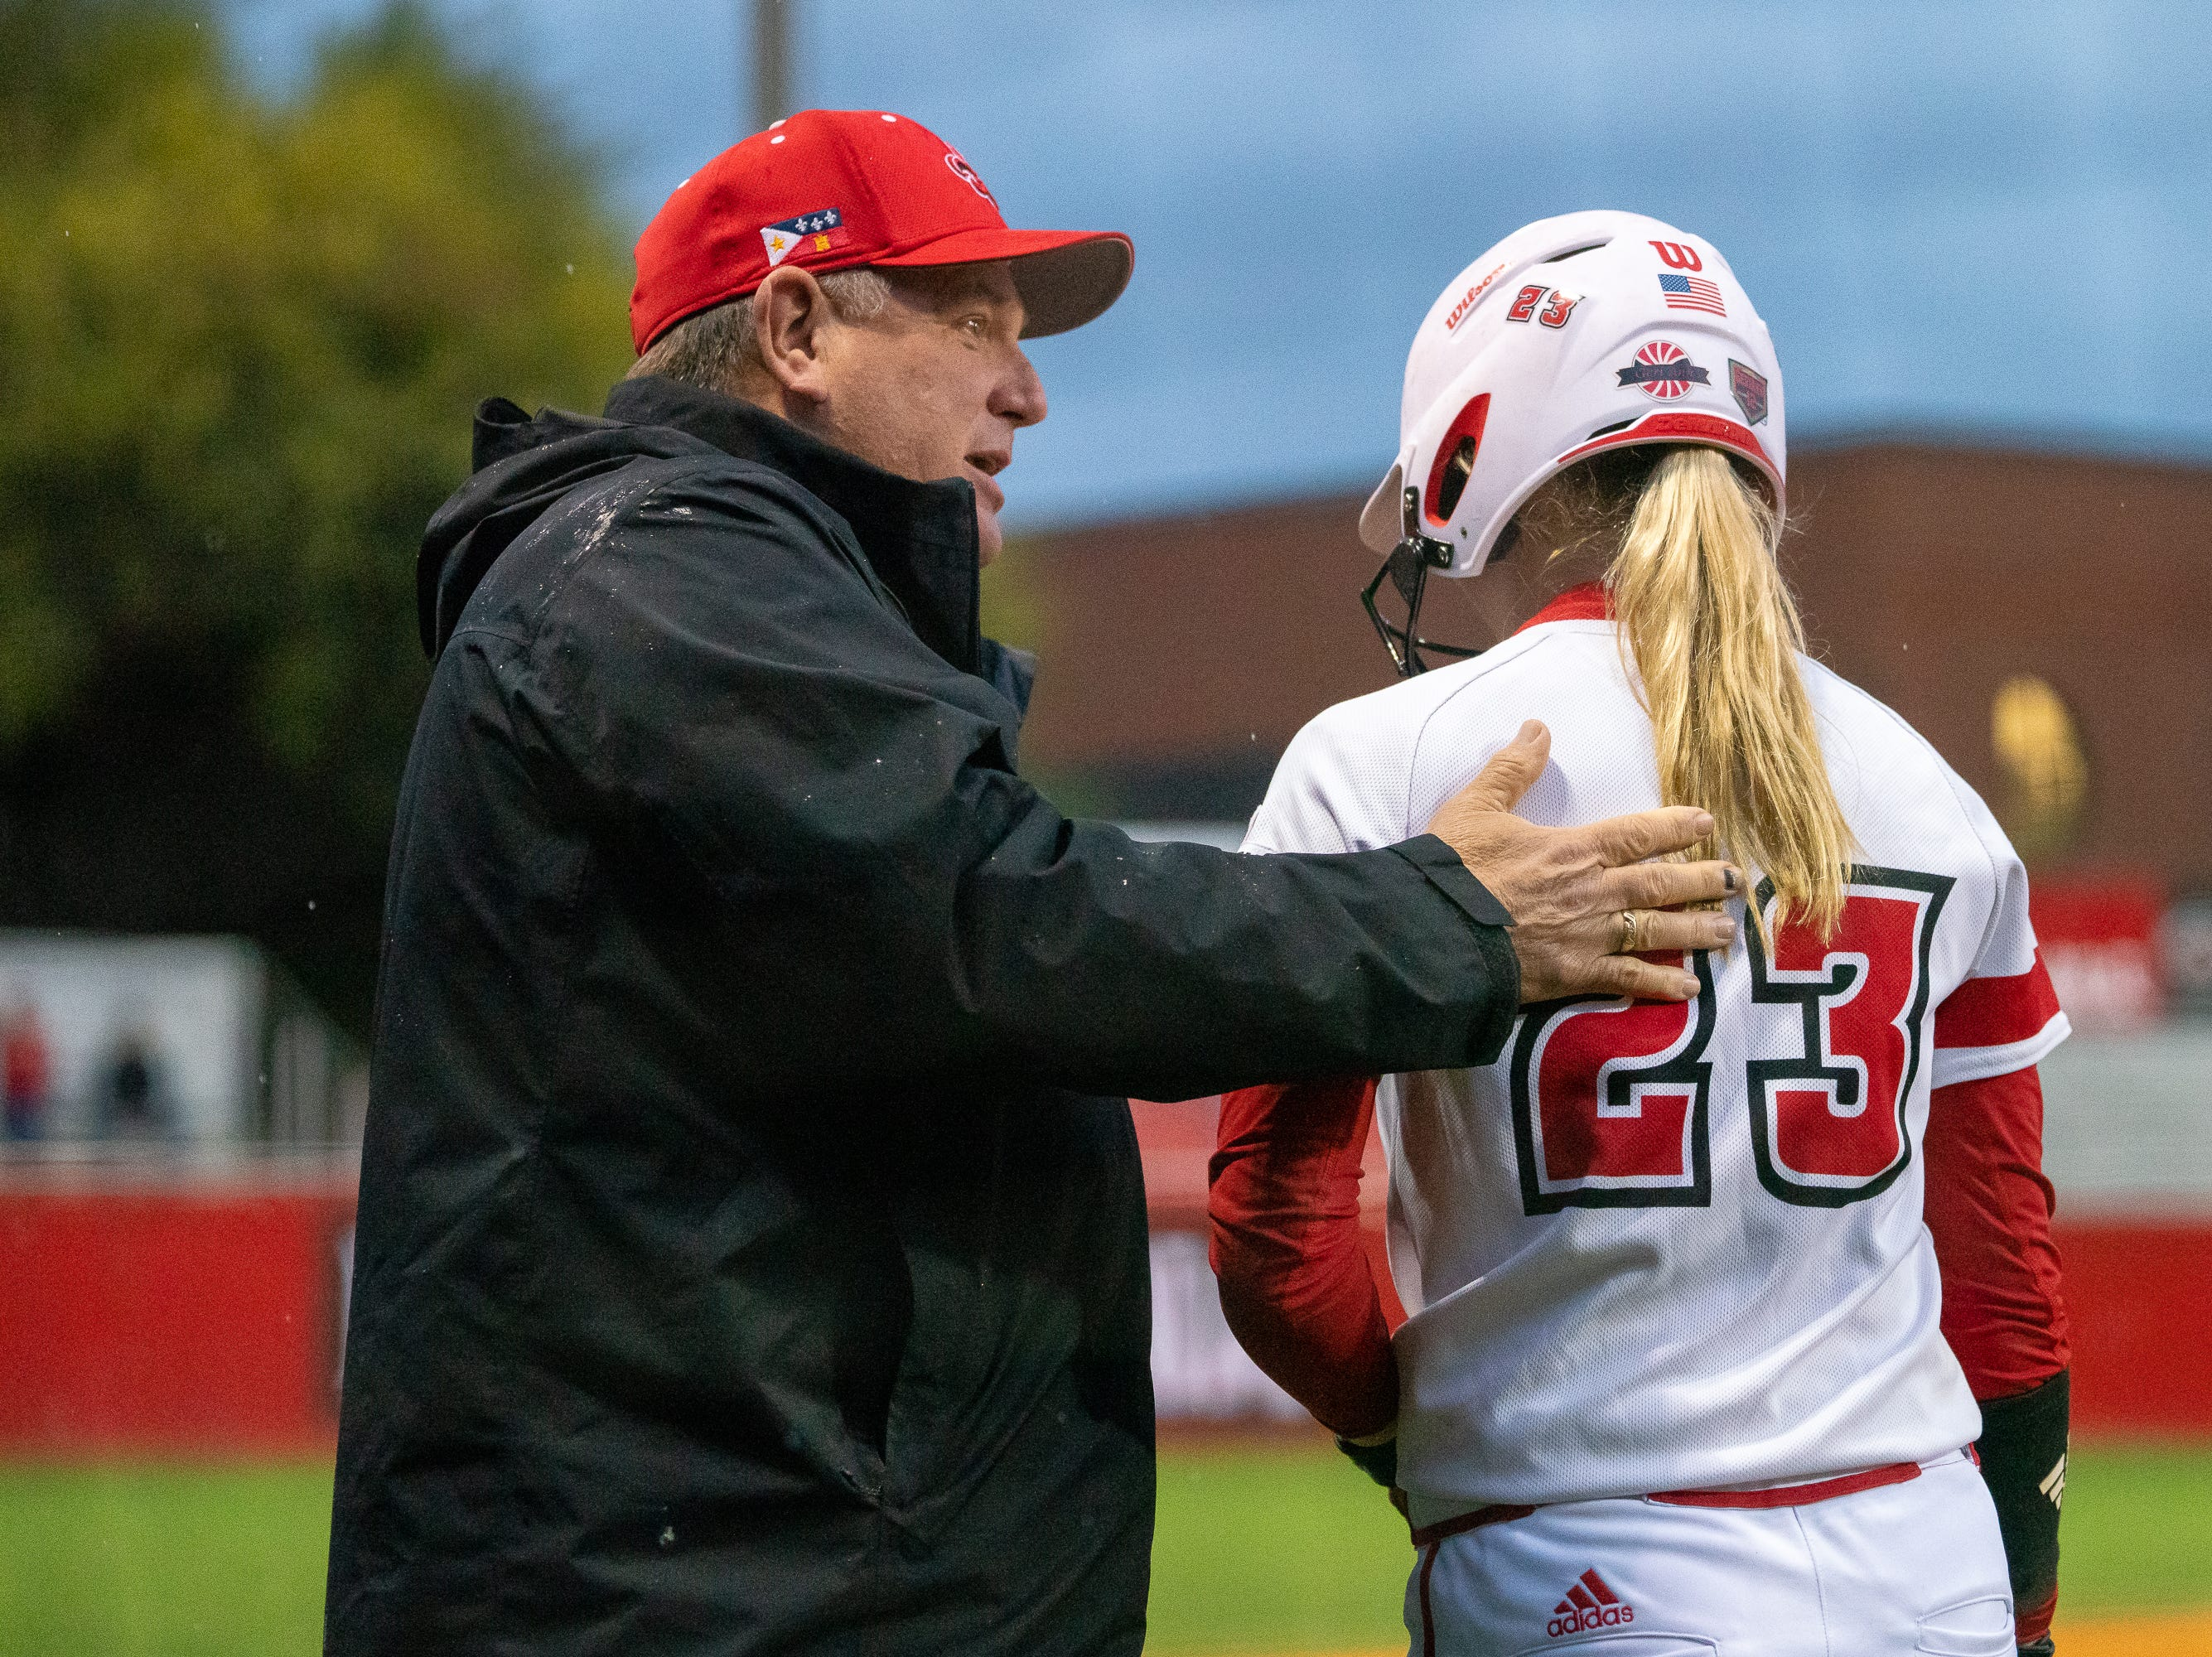 UL's head softball coach Gerry Glasco congratulates Julie Rawls after her home run as the Ragin' Cajuns take on the Troy Trojans at Lamson Park, Yvette Girouard Field on Friday, March 15, 2019.